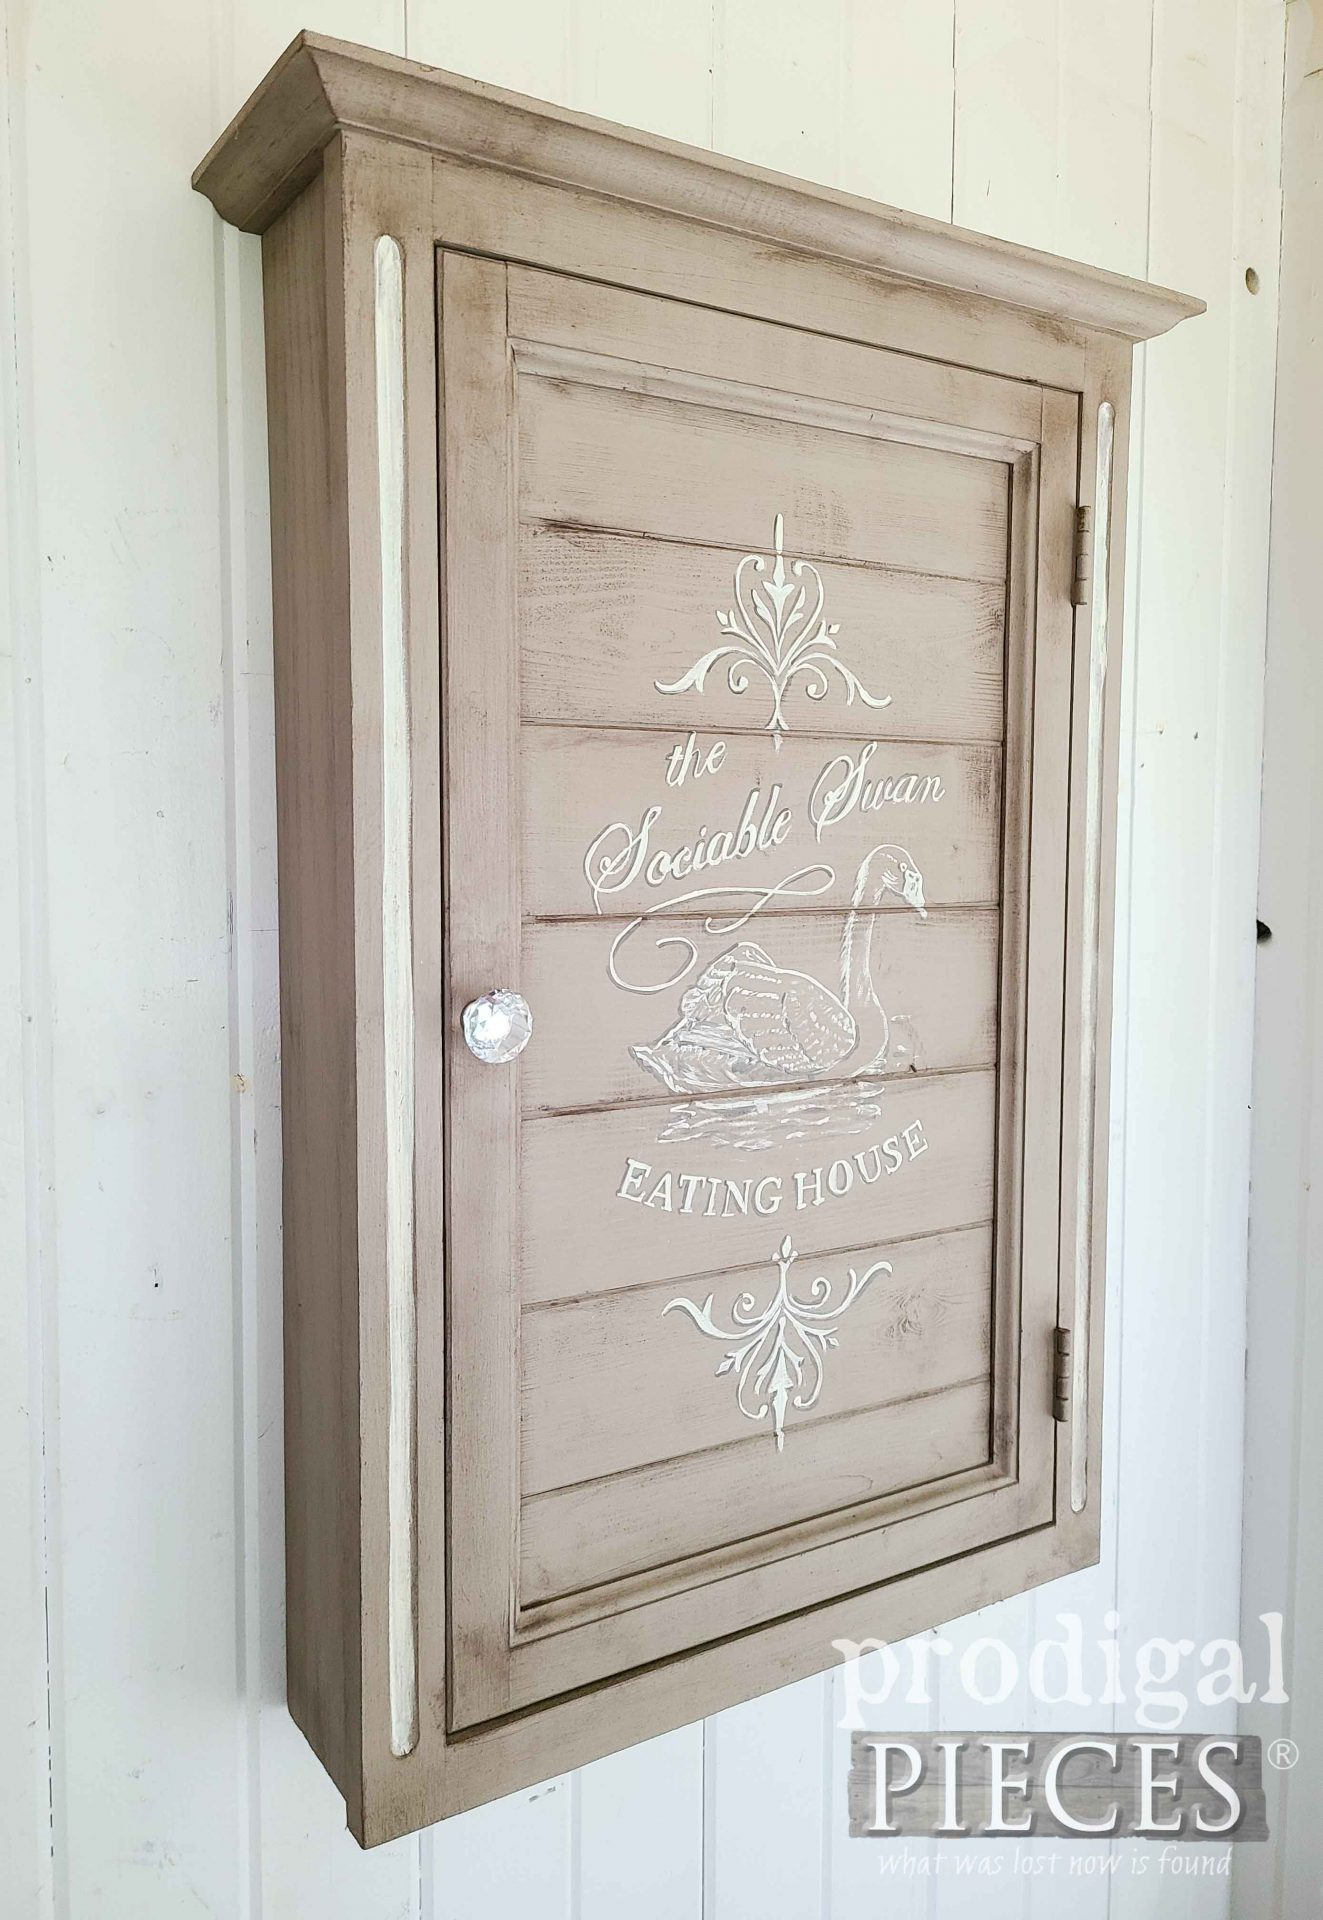 DIY Farmhouse Wall Cabinet for Added Storage by Larissa of Prodigal Pieces | prodigalpieces.com #prodigalpieces #diy #farmhouse #home